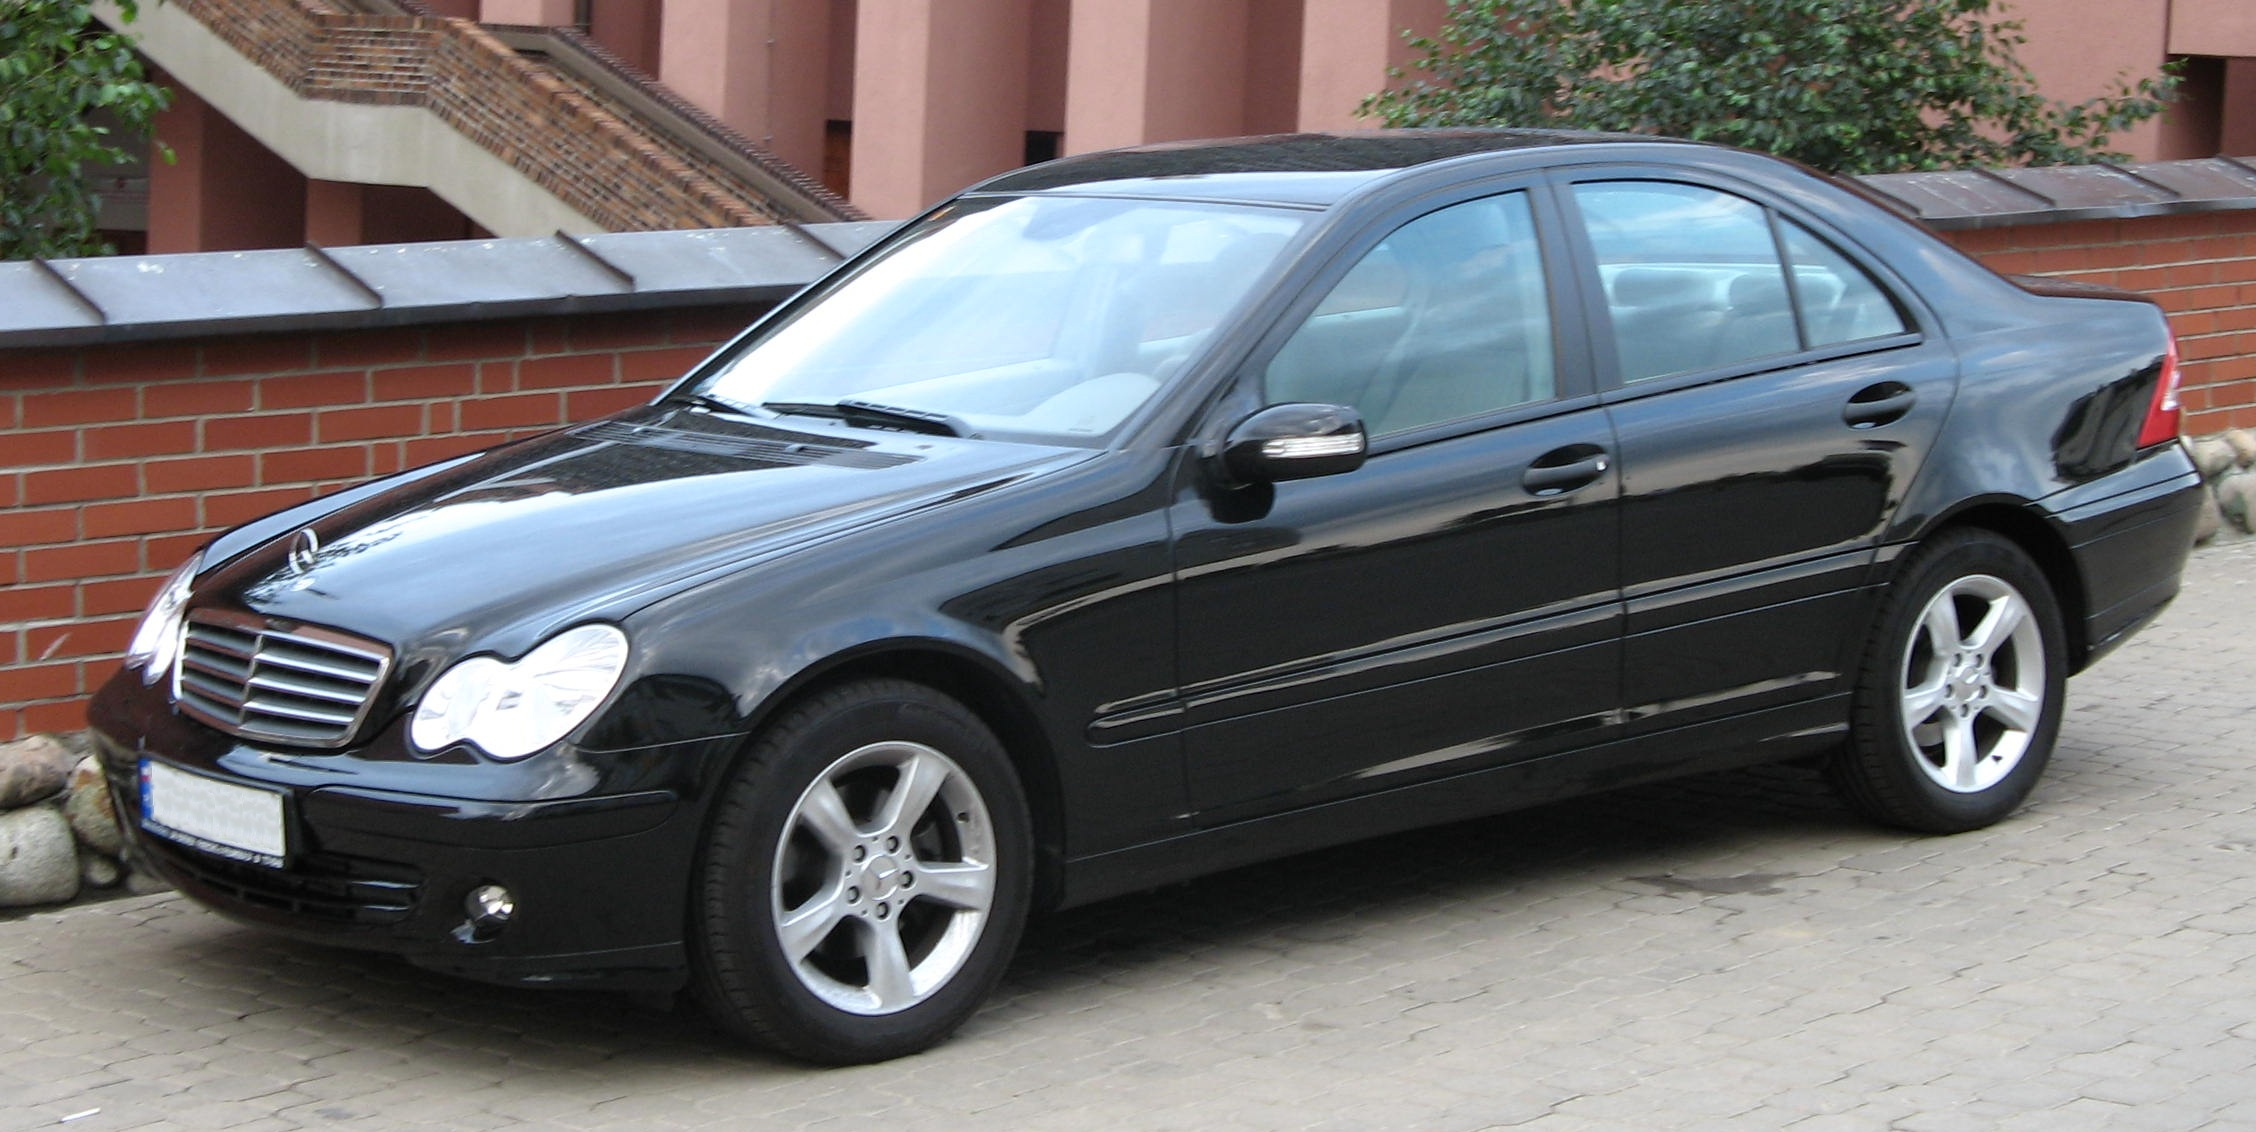 Mercedes Benz C180 Kompressor W203 Two Mercedes Benz Kompressor Thieves Caught Red Handed